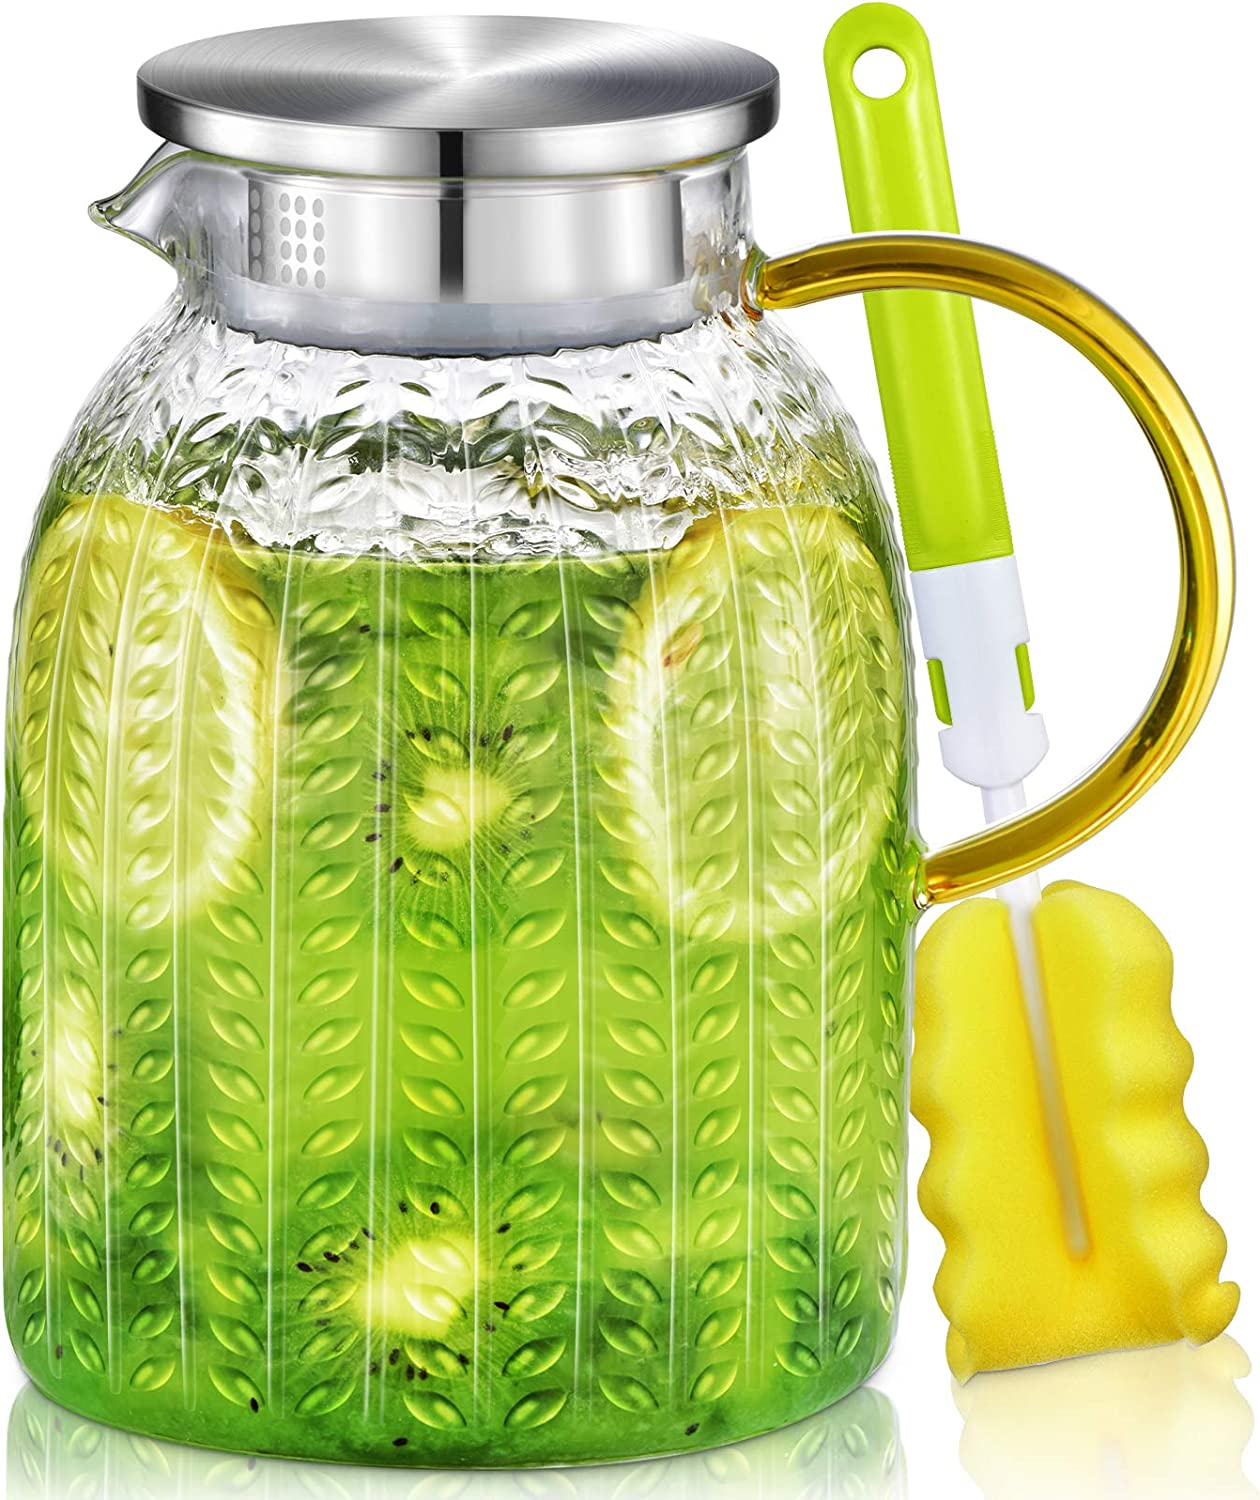 Aofmee Pitcher, 60oz Glass Pitcher, Water Pitcher with Lid, Iced Tea Pitcher for Fridge, Glass Carafe for Cold or Hot Beverages, Sun Tea Jar for Juice, Easy Clean Heat Resistant Glass Jug for Milk